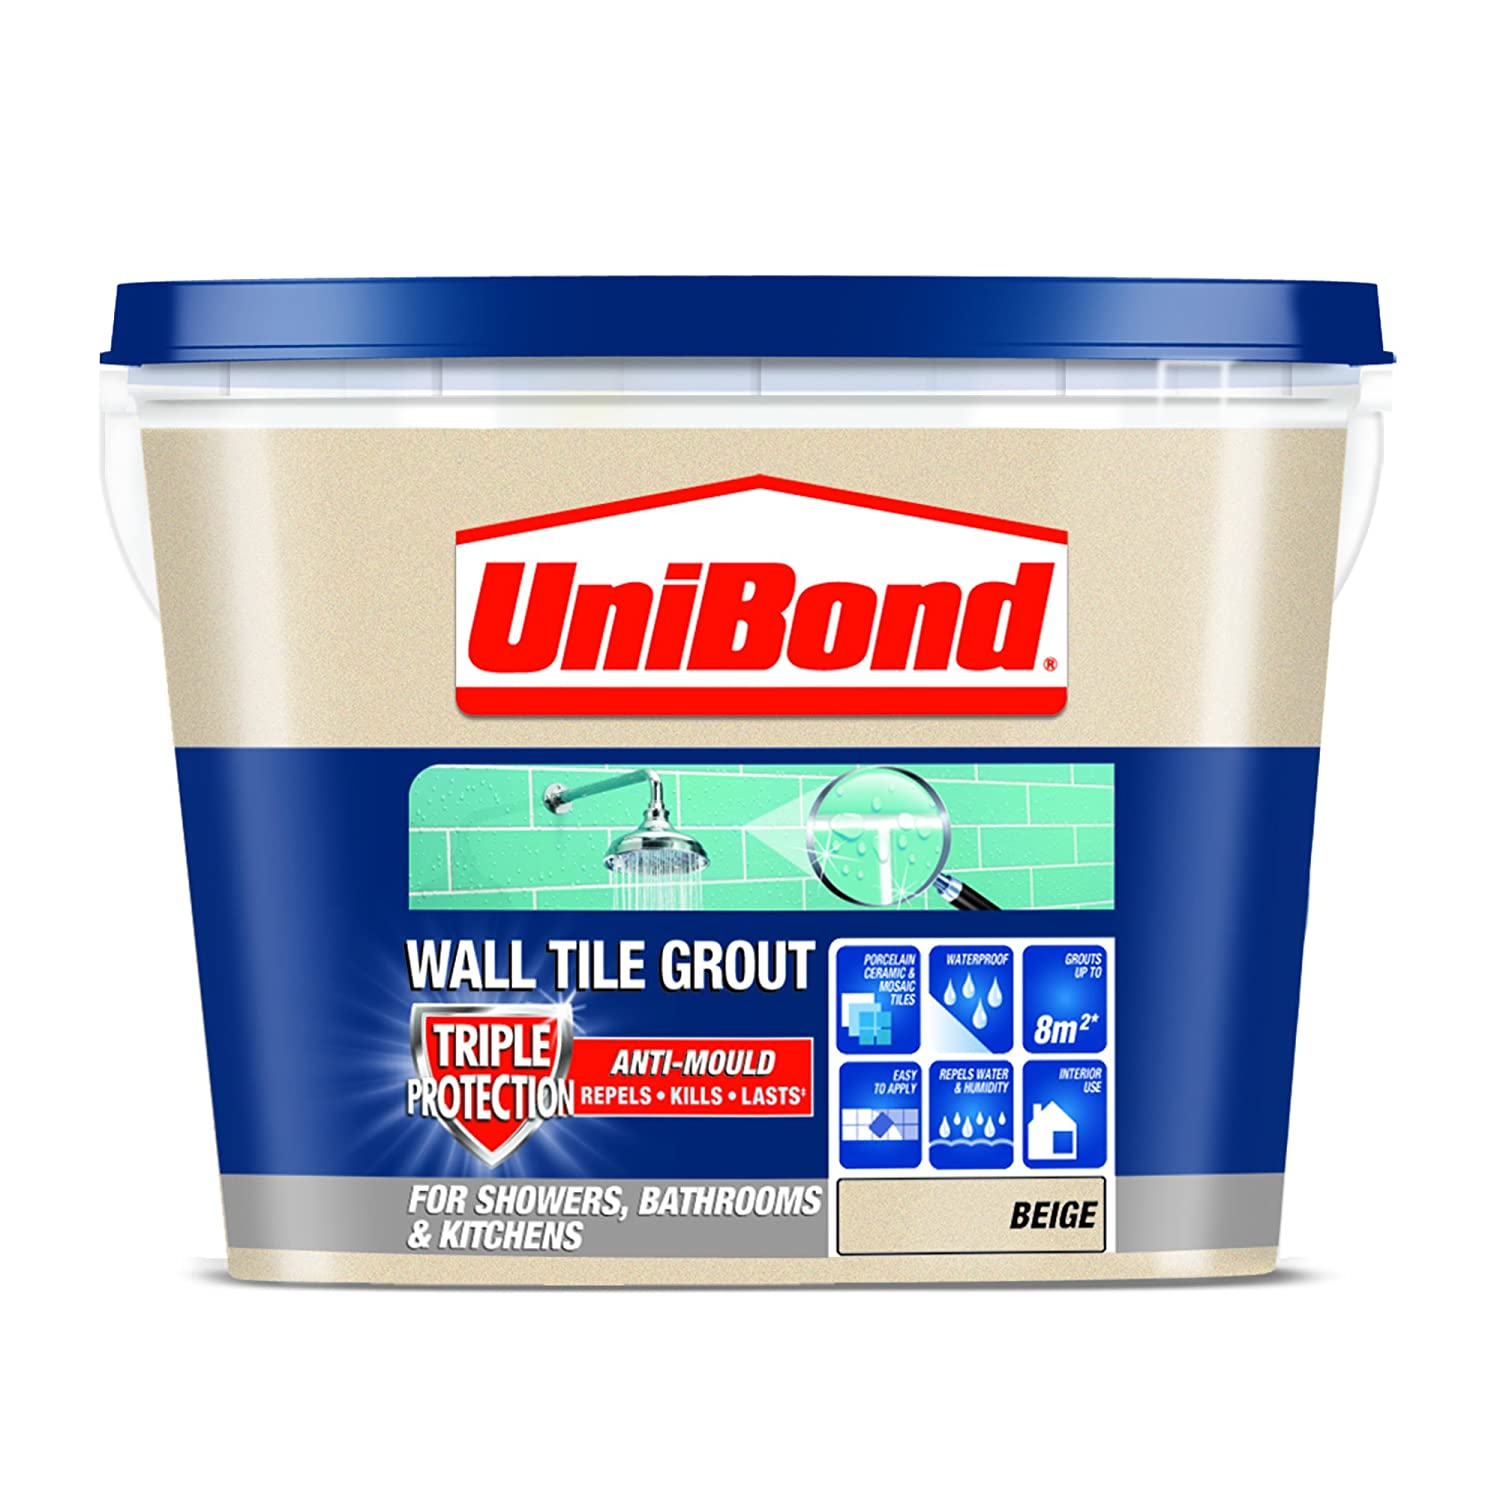 Unibond 1617927 triple protect anti mould wall tile grout cream unibond 1617927 triple protect anti mould wall tile grout cream amazon diy tools dailygadgetfo Images